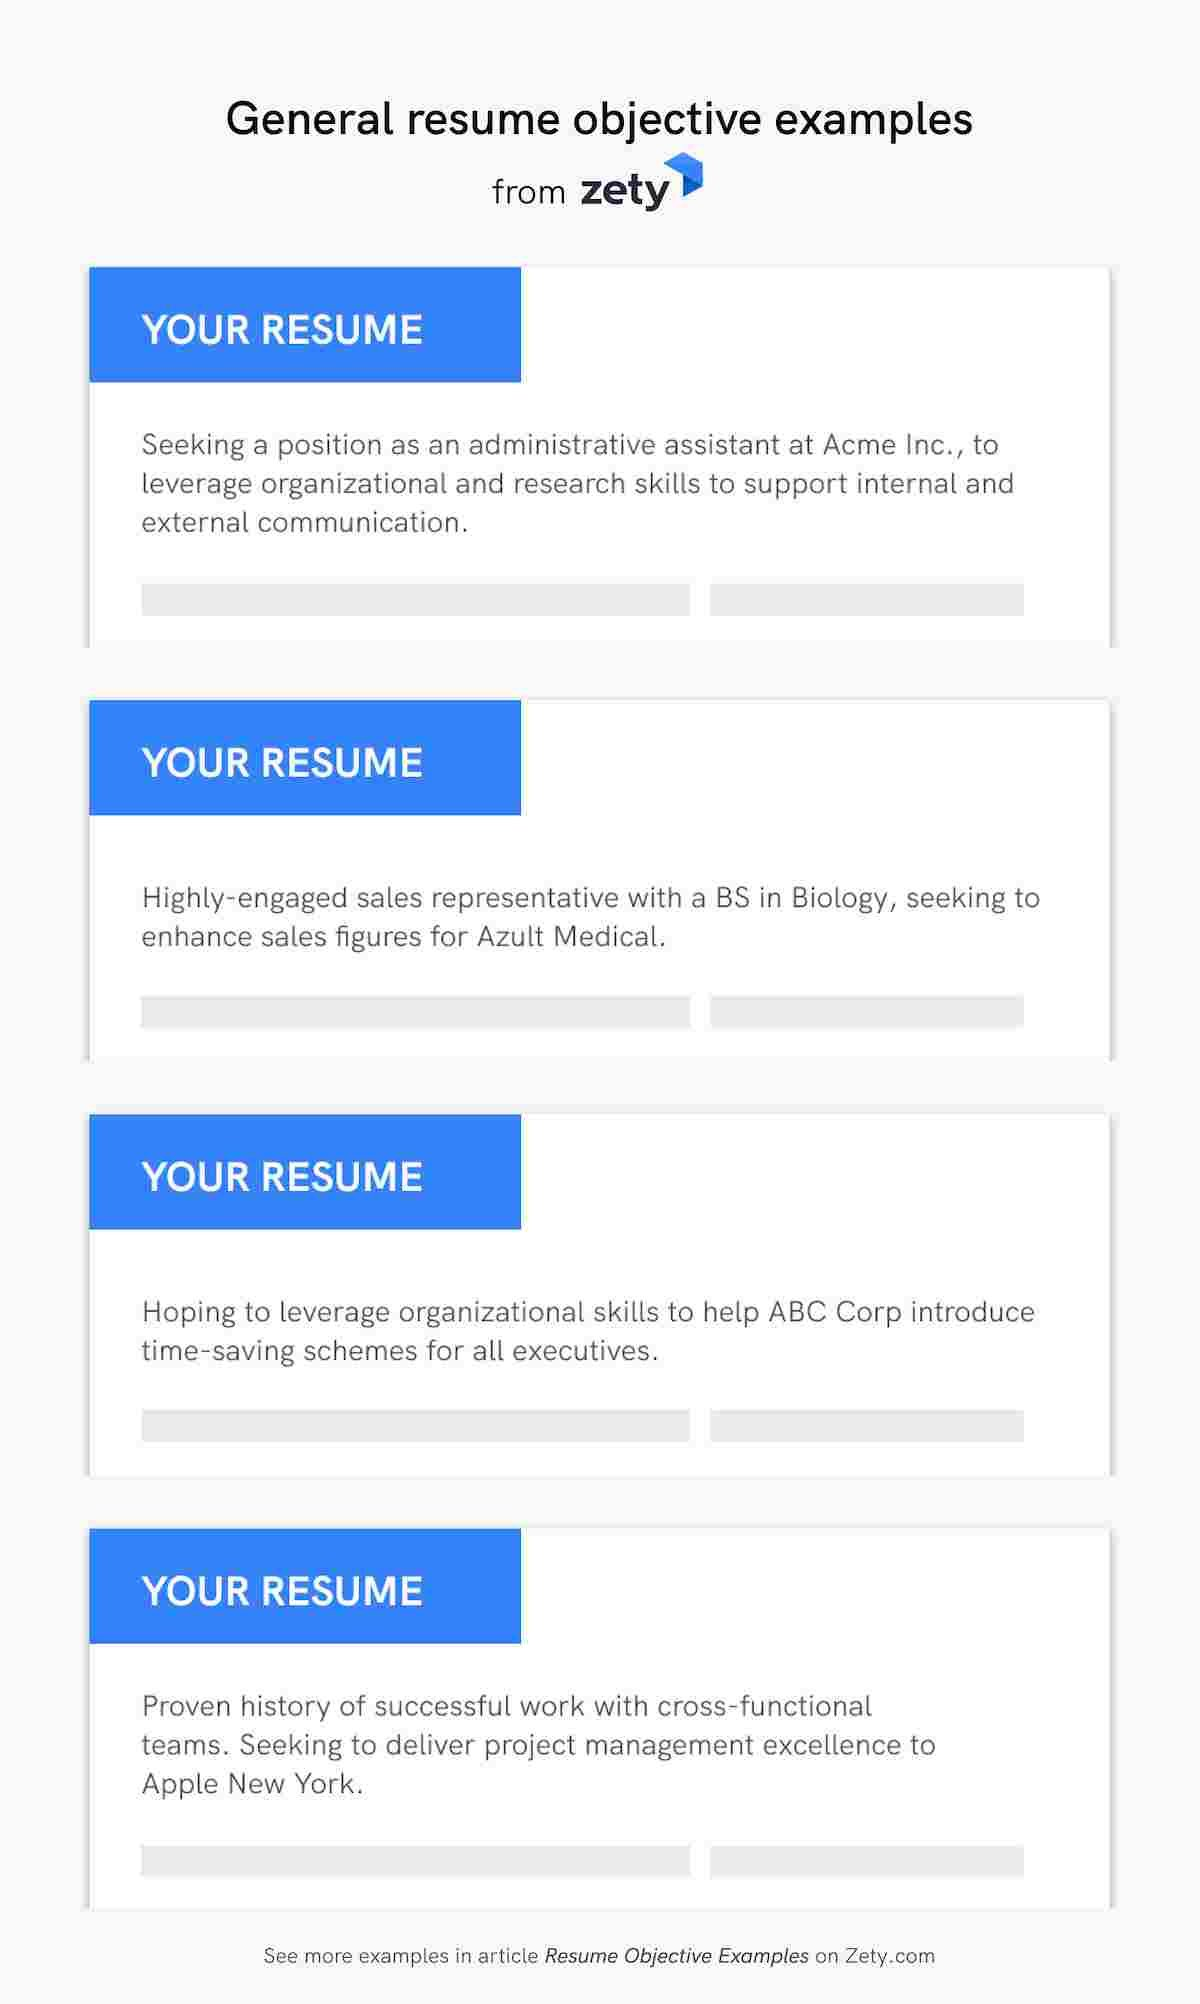 resume objective examples career objectives for all jobs professional statement general Resume Professional Resume Objective Statement Examples